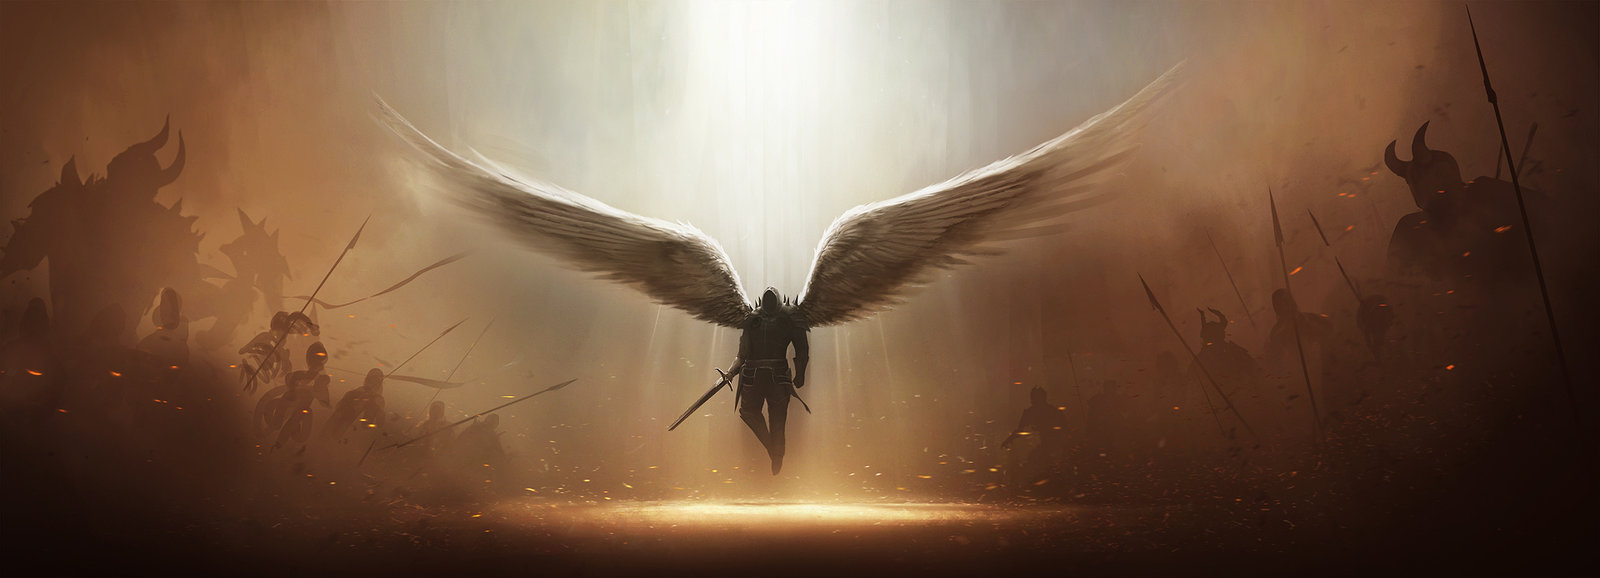 Diablo 3 tyrael fan art by tobylewin d47ro3t